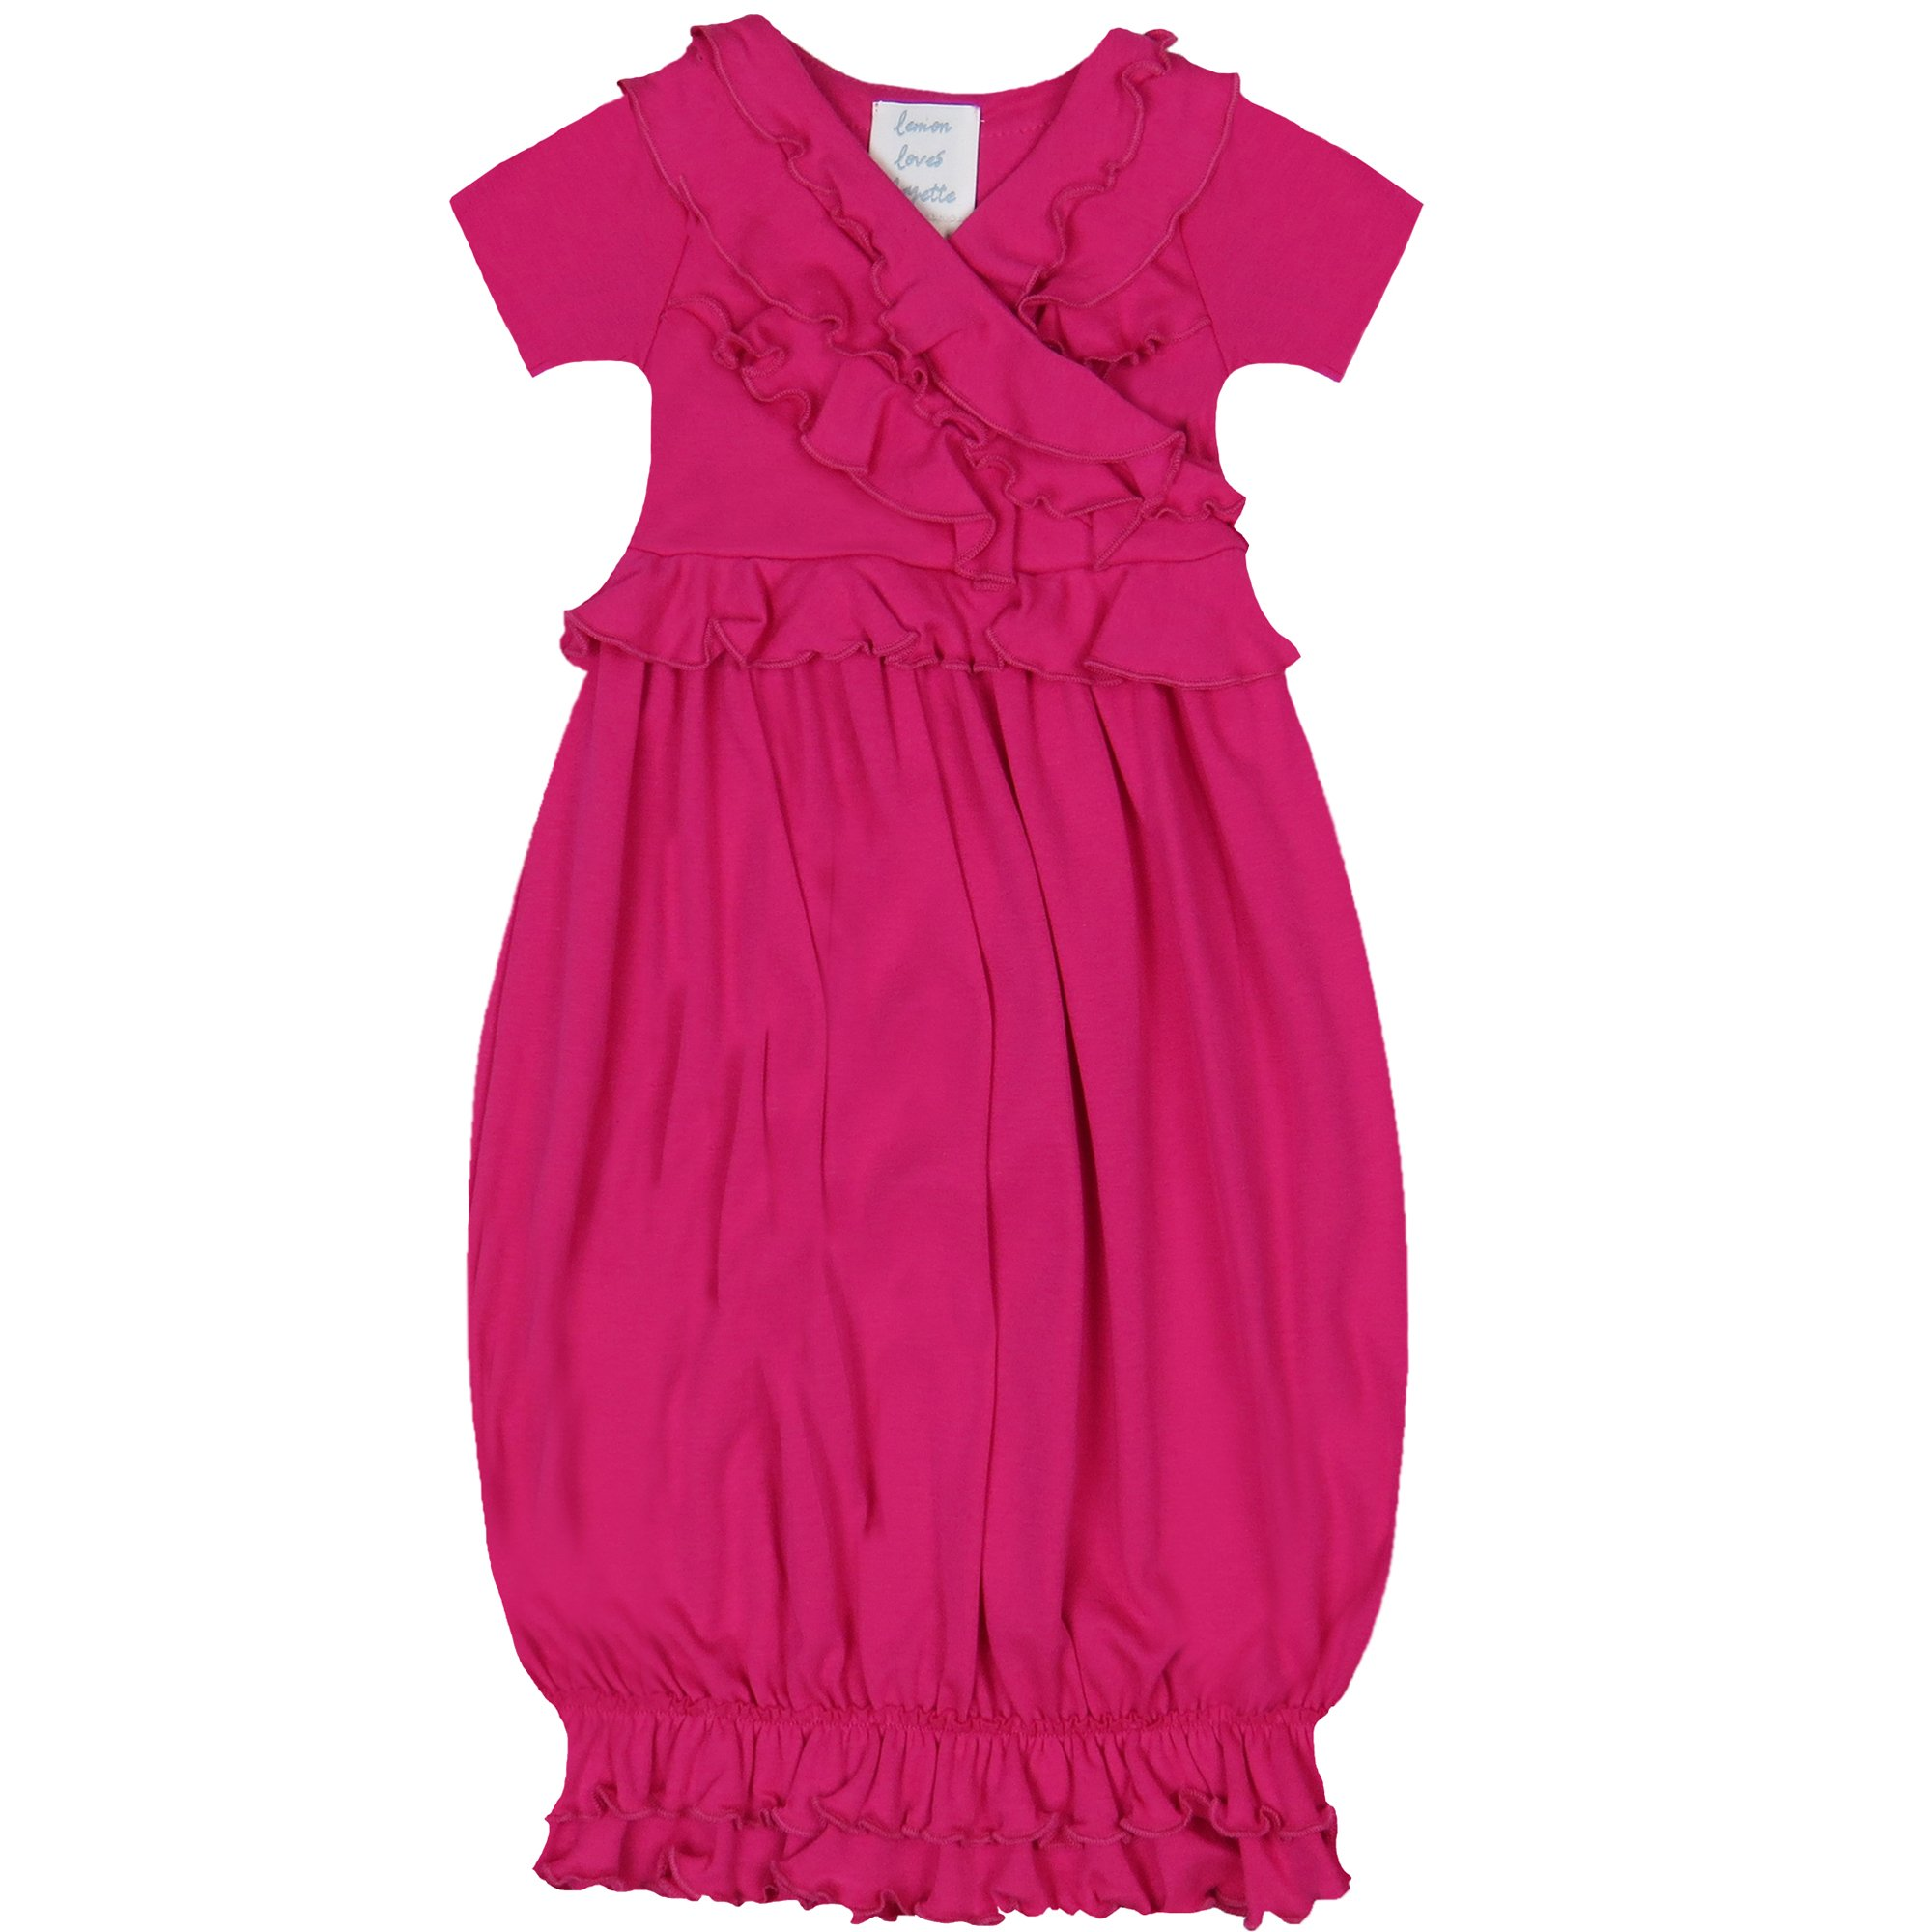 Take Me Home - Lemon Loves Layette Hot Pink Baby Gown